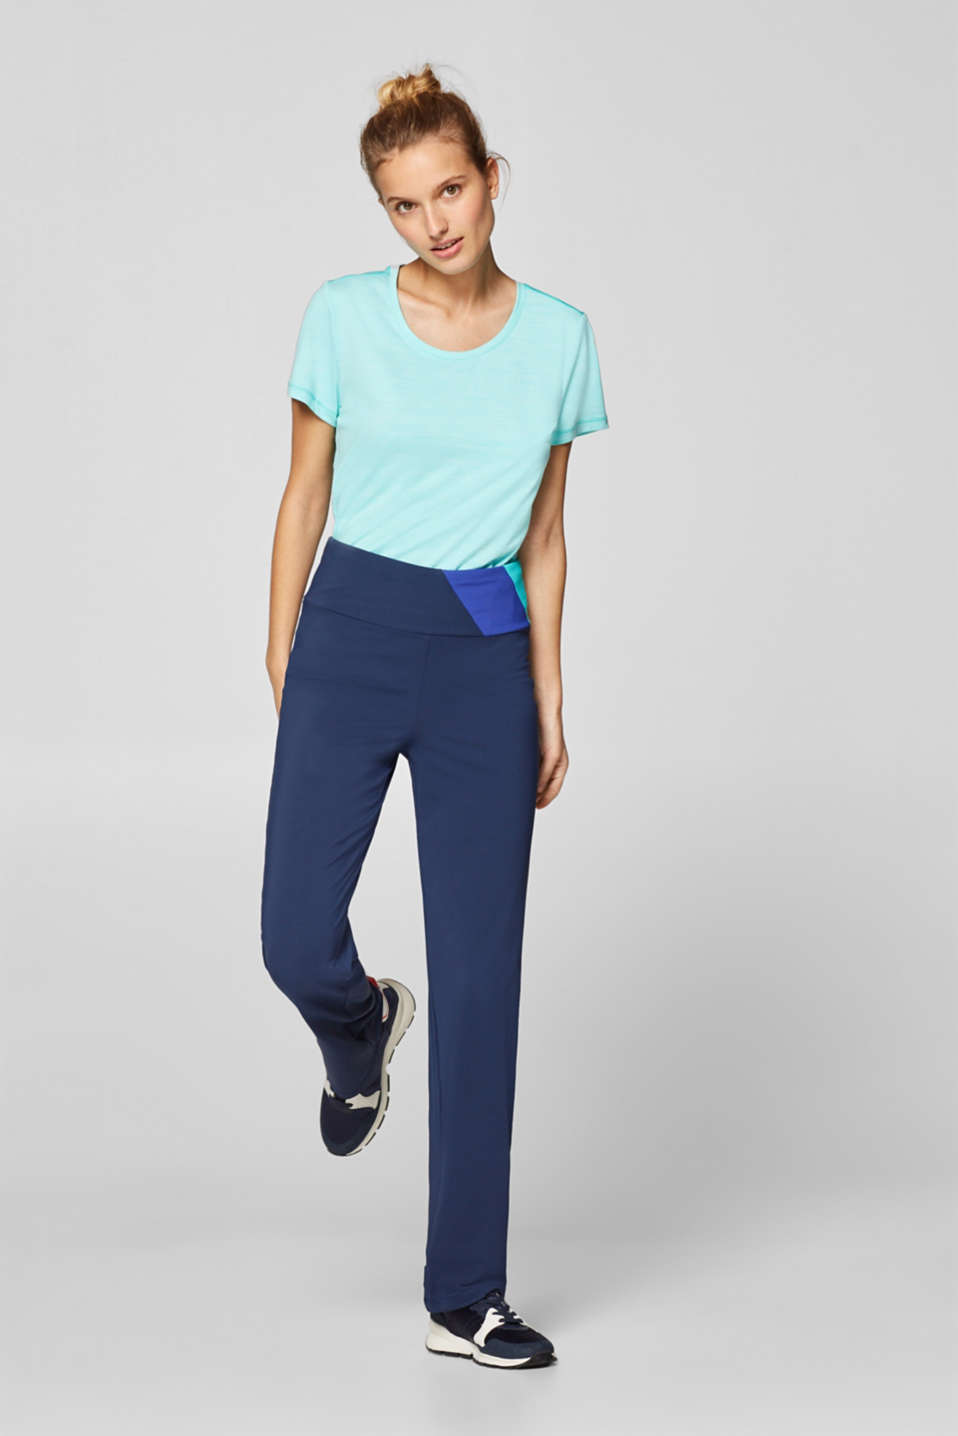 Esprit - Jazzbroek met colour block, E-DRY